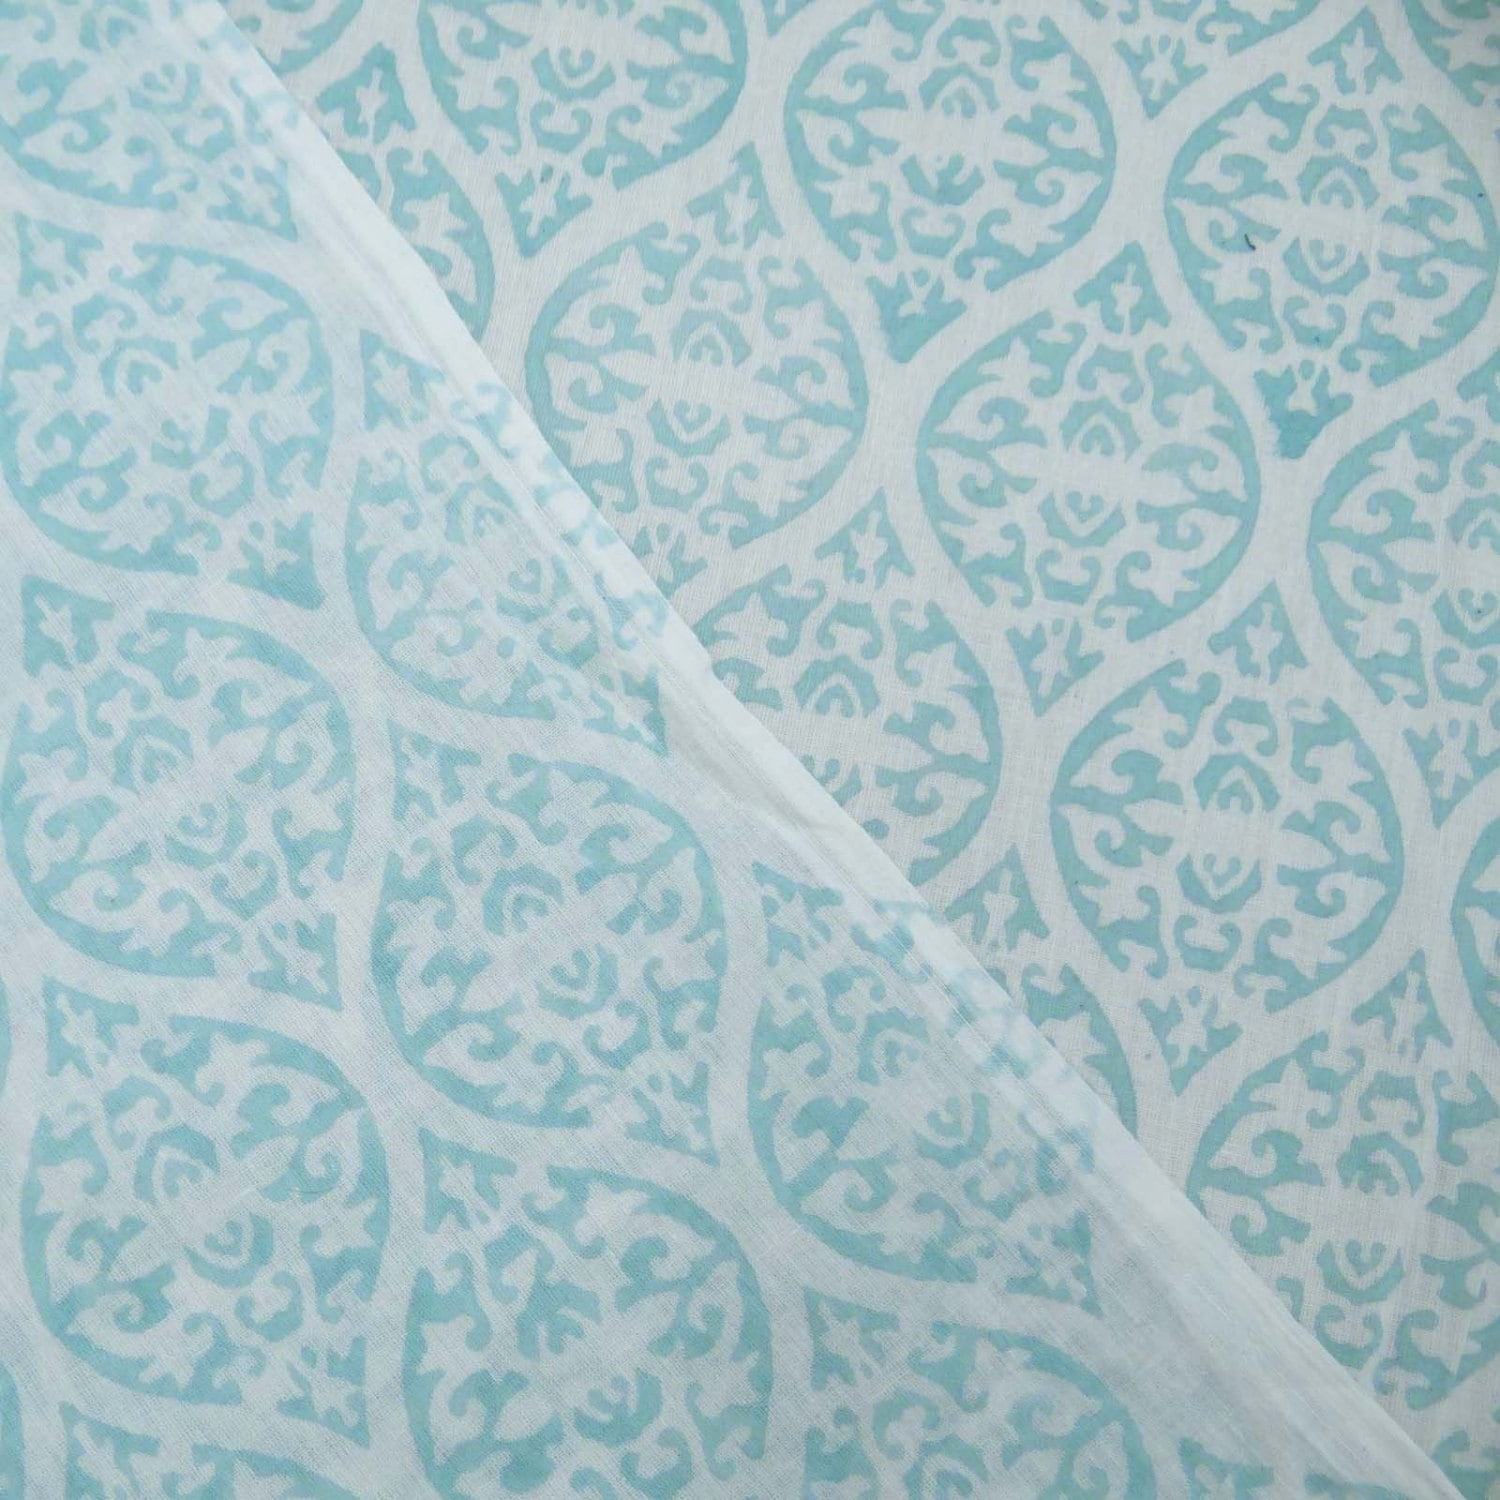 Poster Weights Etsy: 10 Yard Hand Block Print 100% Pure Cotton Fabric Light